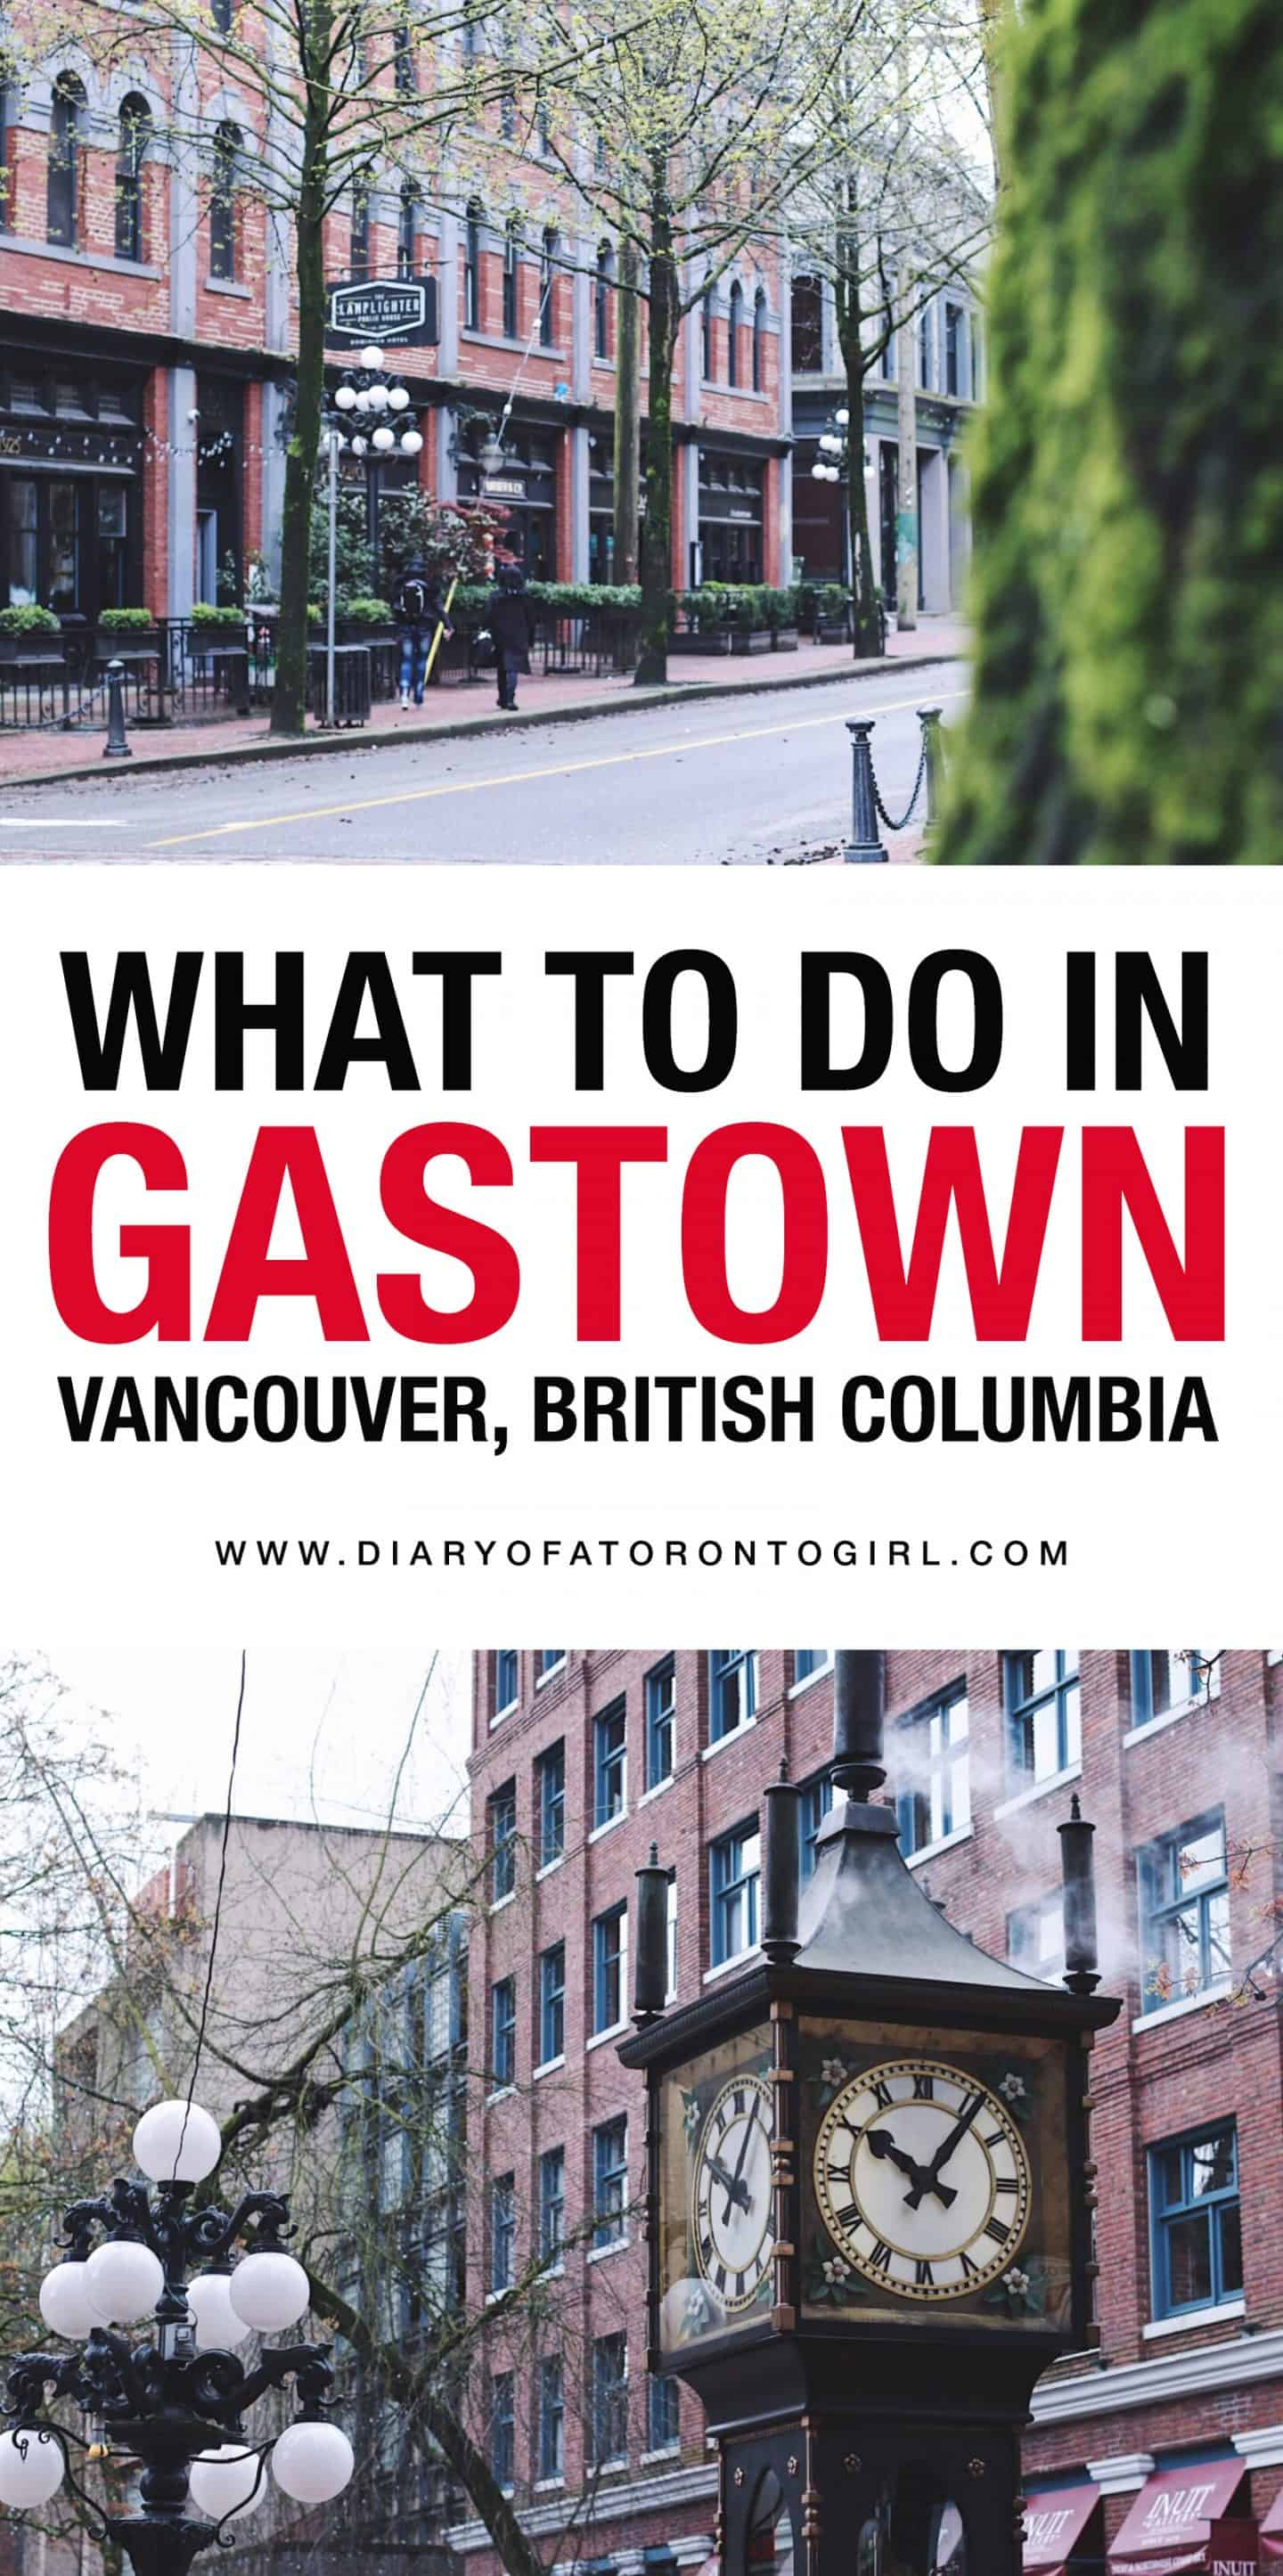 All the best things to see and do in the historical neighbourhood of Gastown in Vancouver, British Columbia!